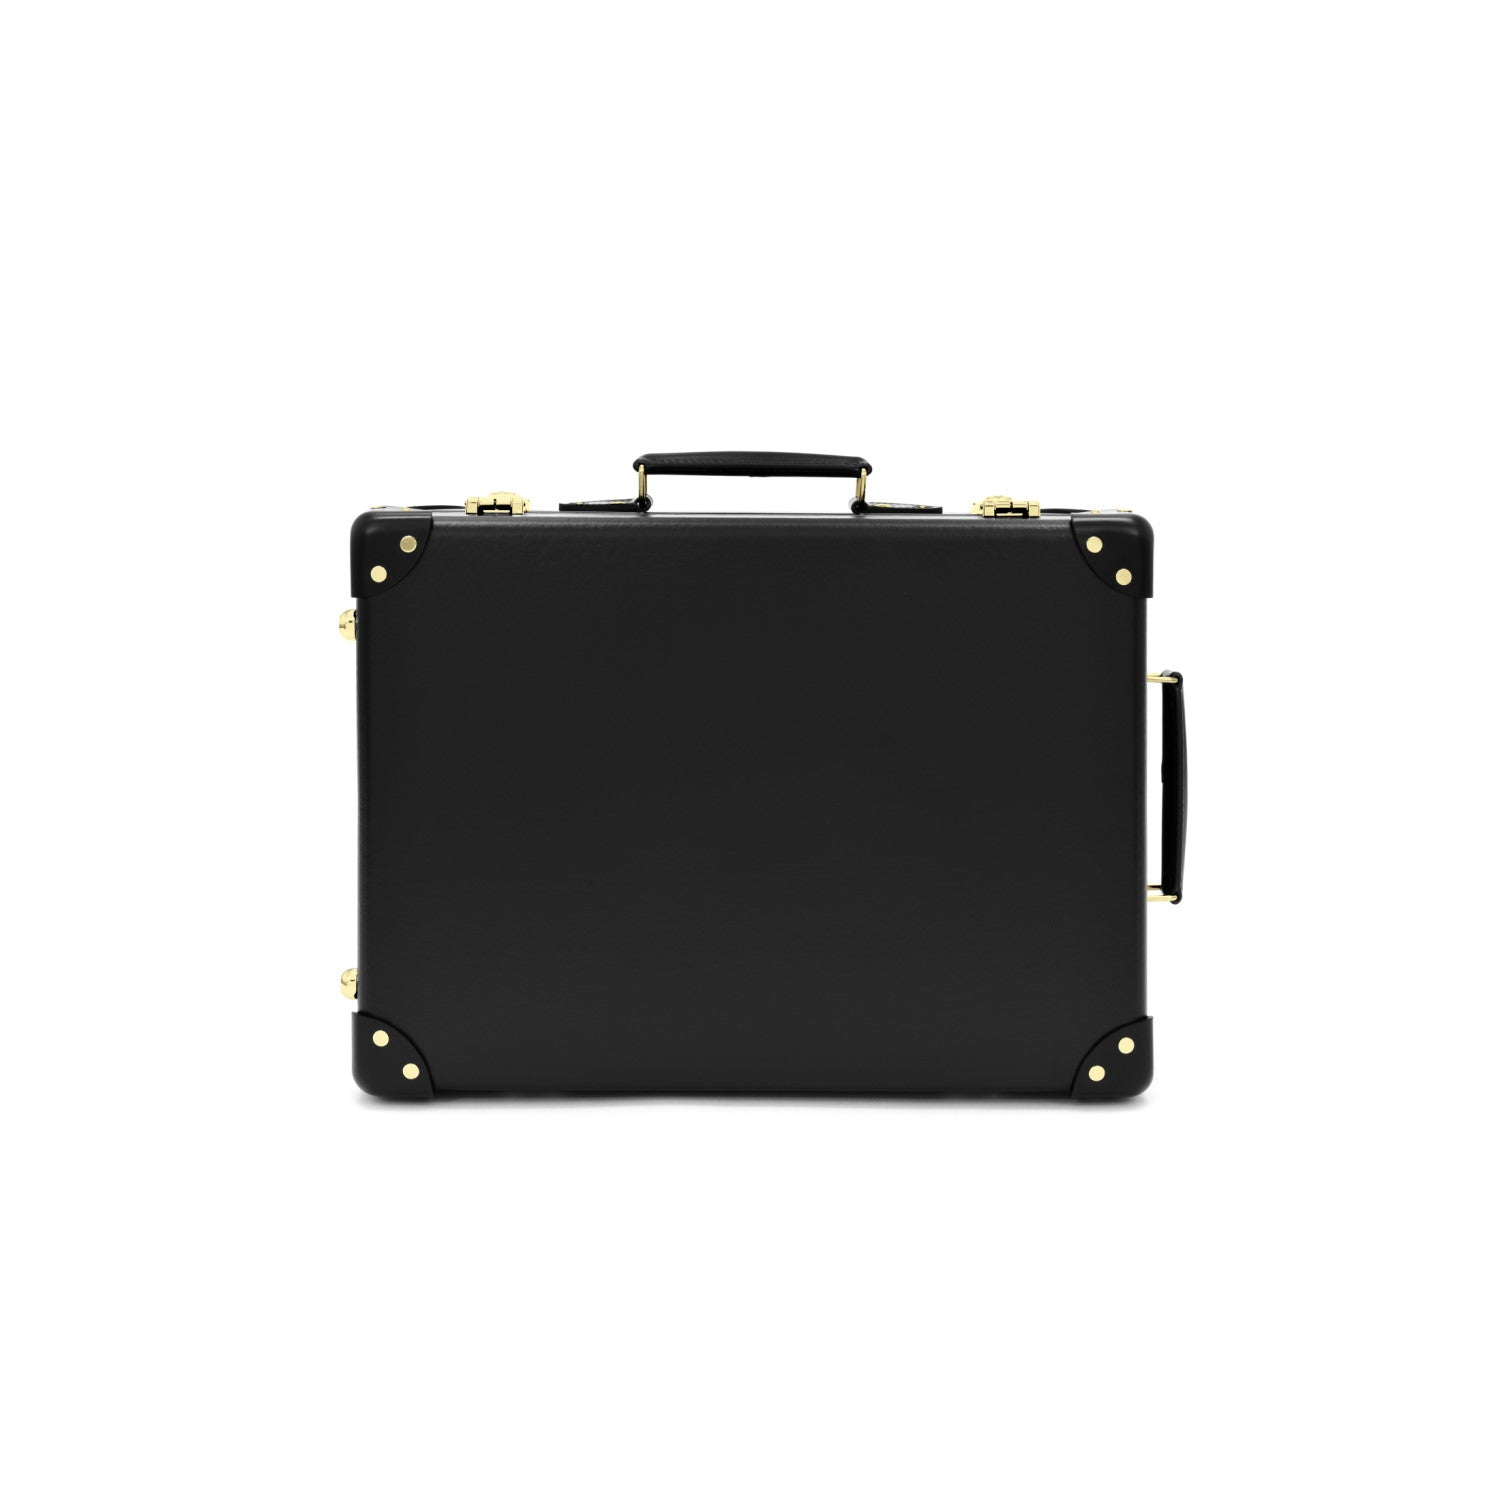 Centenary · Small Carry-On | Black/Black/Gold